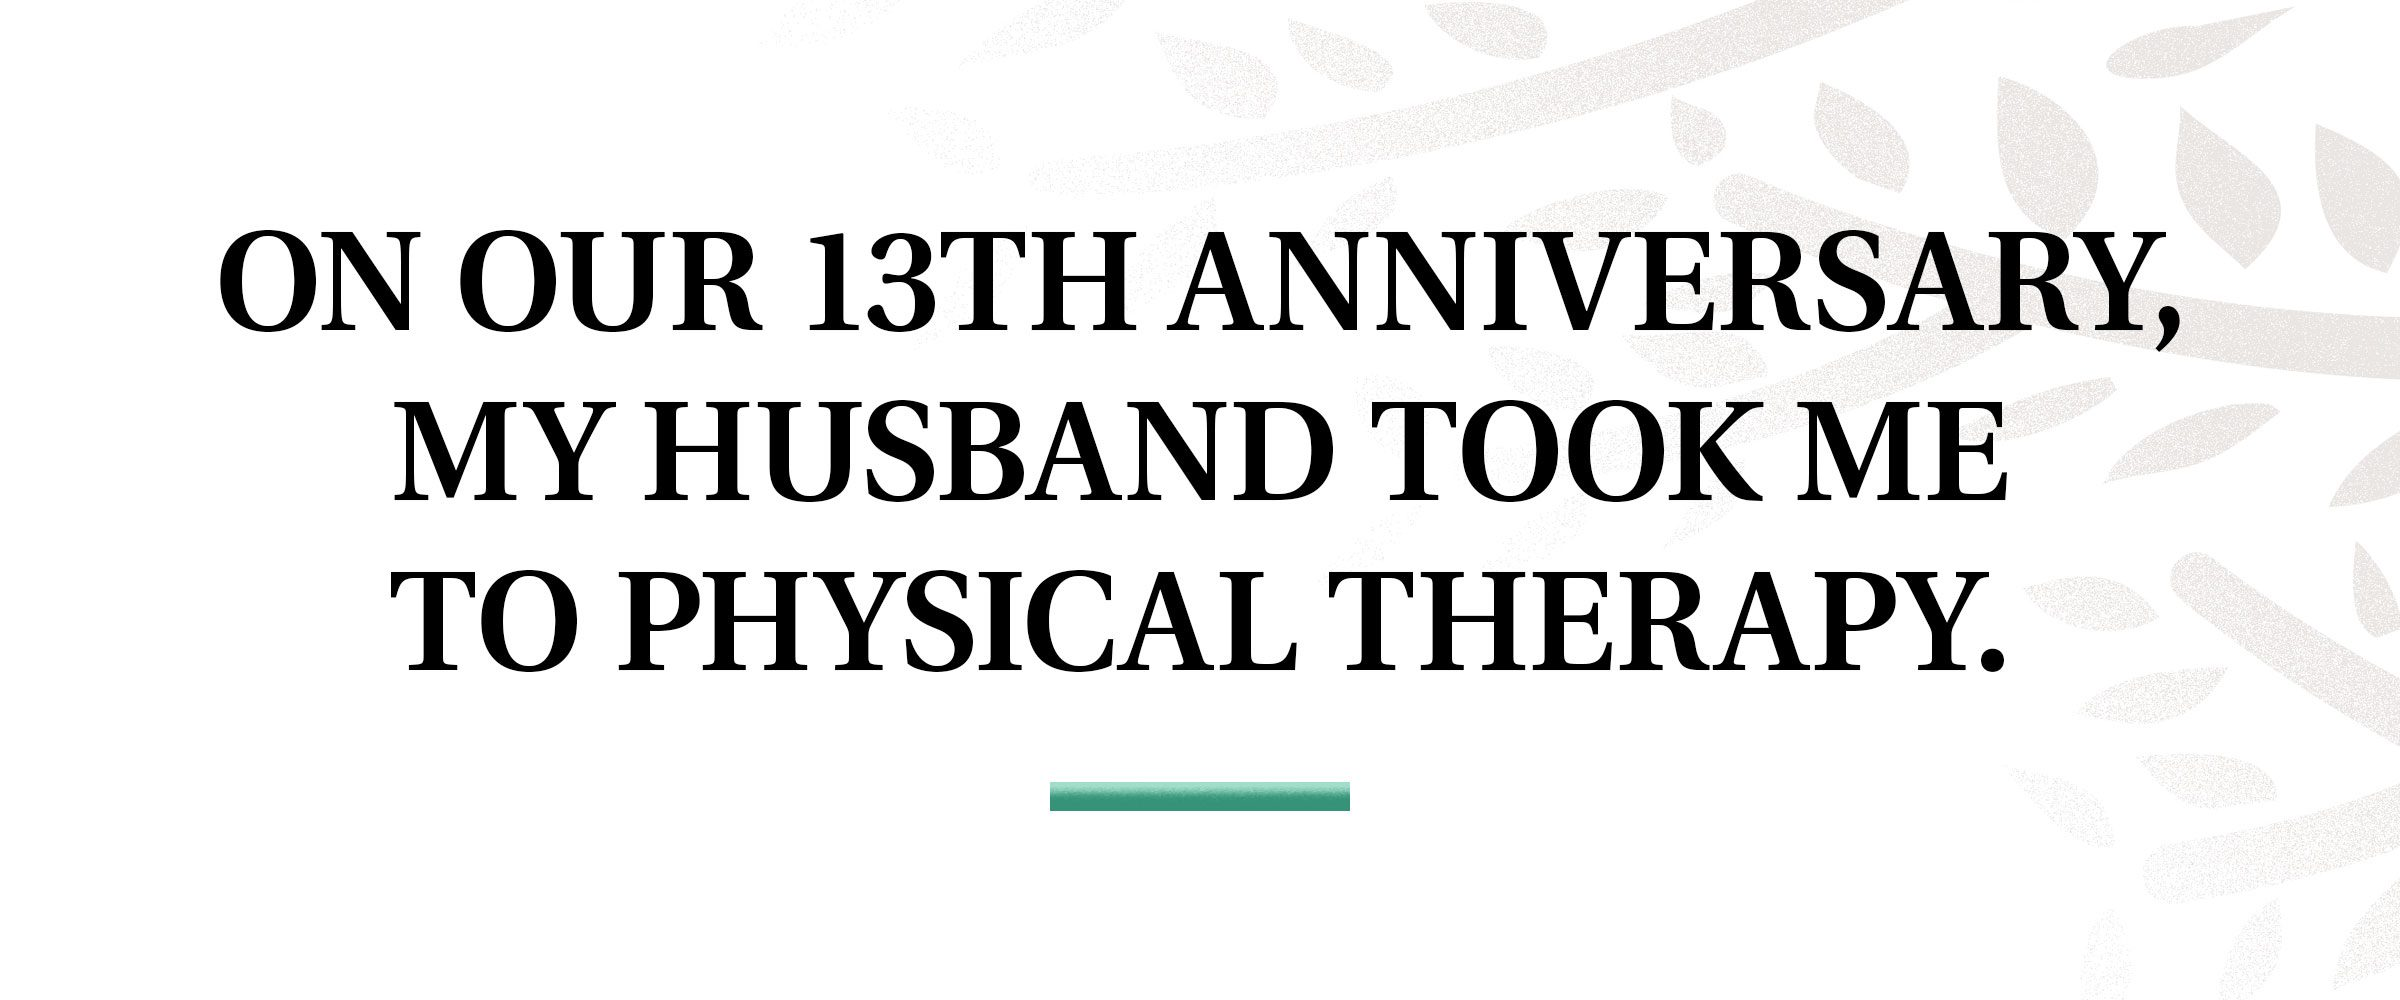 pull quote text: On our 13th anniversary, my husband took me to physical therapy.